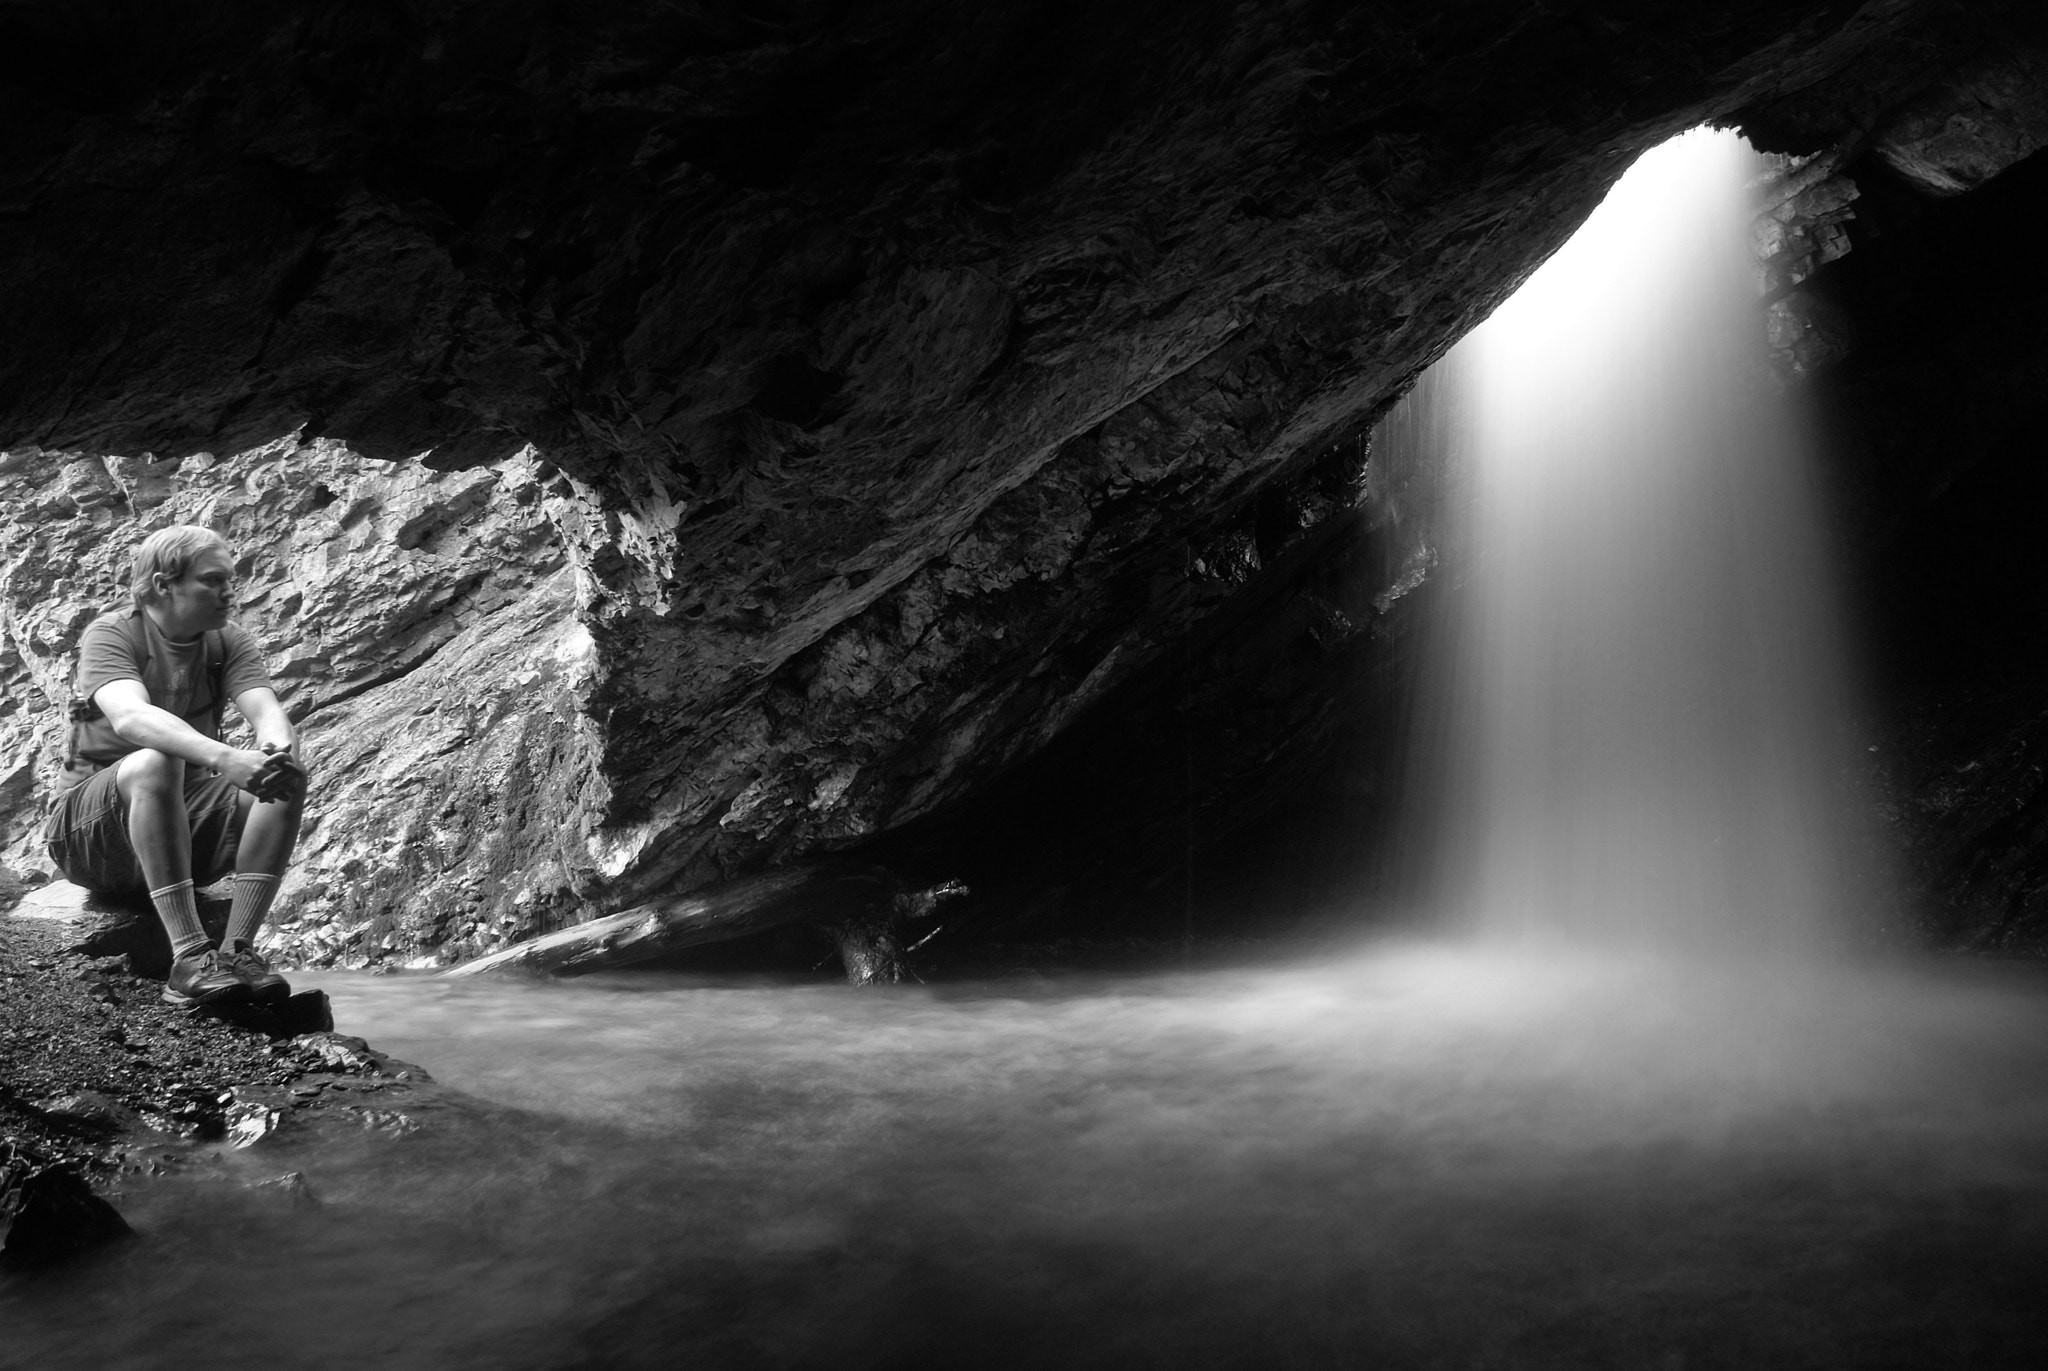 Photograph Donut Falls by Christian Madsen on 500px